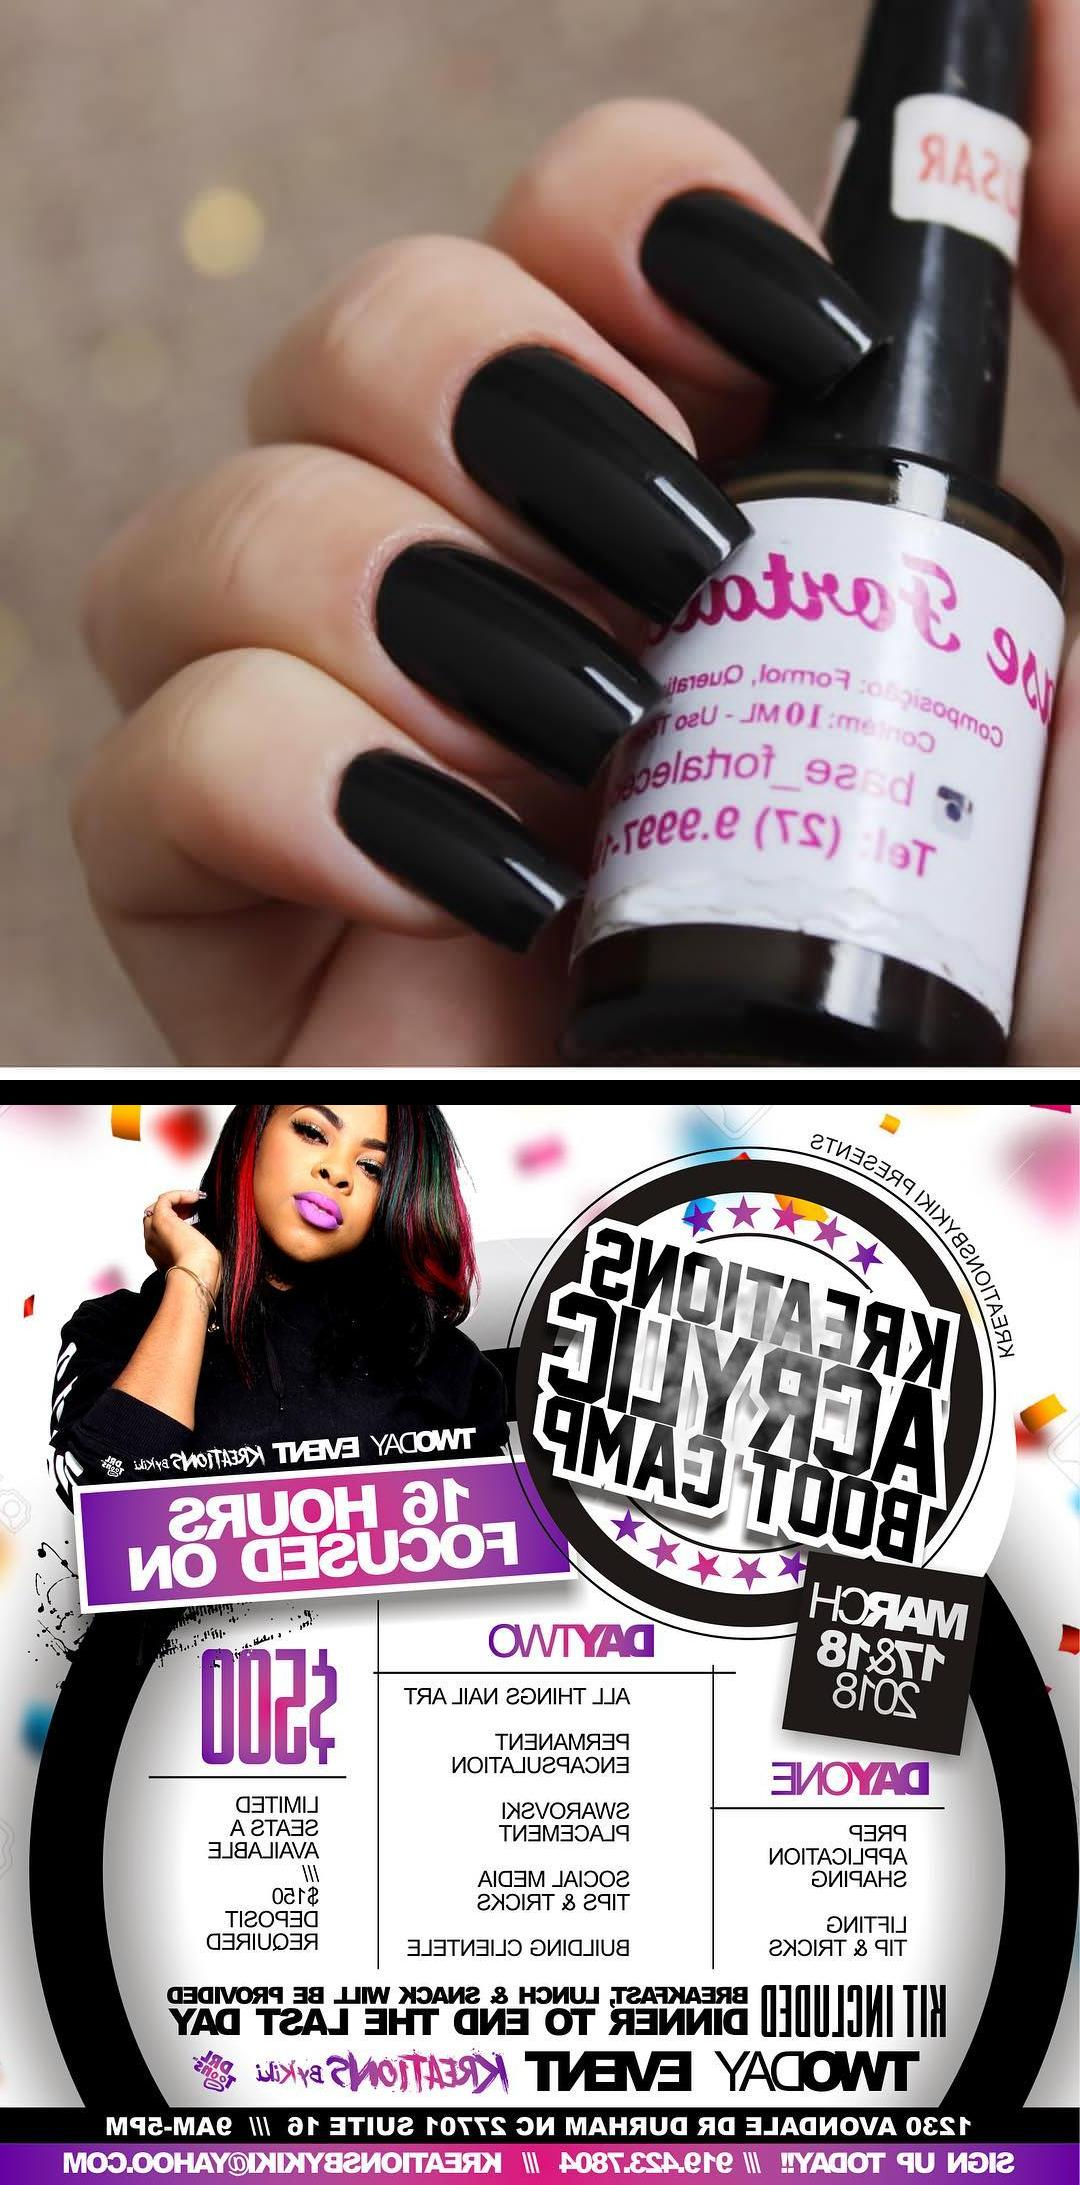 opi gel,luxury nails and spa,Minha base fortalecedora da base_fortalecedora Antigamente eu nusava e minhas unhas eram papel, eu dobrava elas com muita facilidade rs.... Grandes, mas sempre com uma ou outra curtinha pq quebravam muito! Entpra quem pergunta, eu tusando a base da base_fortalecedora, particularmente uma das minhas preferidas Quem tiver interesse em comprar schamar no whats (27) 9.9997.1948, custa R$40,00 e ela envia para todo o Brasil! The next boot camp!  The last one went by so fast that Idecided to make this one a two day event! Yessss 16 full hours!! Iso excited! . $150 deposit to hold your spot w/ remainder due by March 4, 2018  REGISTRATION IS CLOSING SOON  Send your deposit to paypal.me/kreationsbykiki or $kreationsbykiki through cash appa saying MARCH BOOTCAMP and then send me a message with your full name, email and phone number! . . You donwant to miss this! Itgoing to be a nail party! ~~ Flyer by drltoons ~~